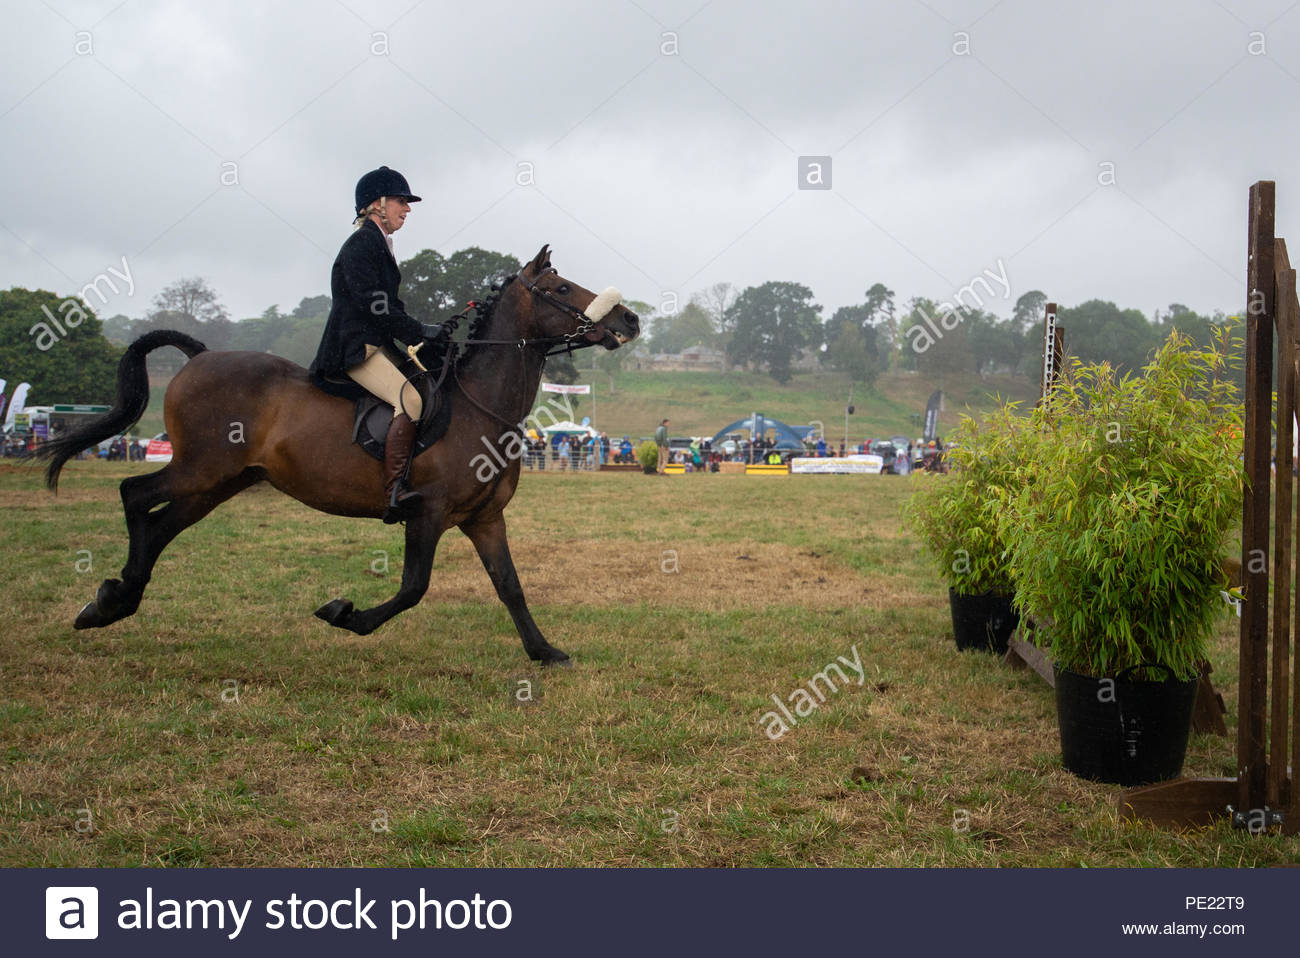 Ellingham, Ringwood, New Forest, Hampshire, England, UK, 11th August 2018. A hunt horse and rider look apprehensive as they approach to a fence at the annual Ellingham and Ringwood Agricultural Society Show in the rural west of the county. Credit: Paul Biggins/Alamy Live News - Stock Image